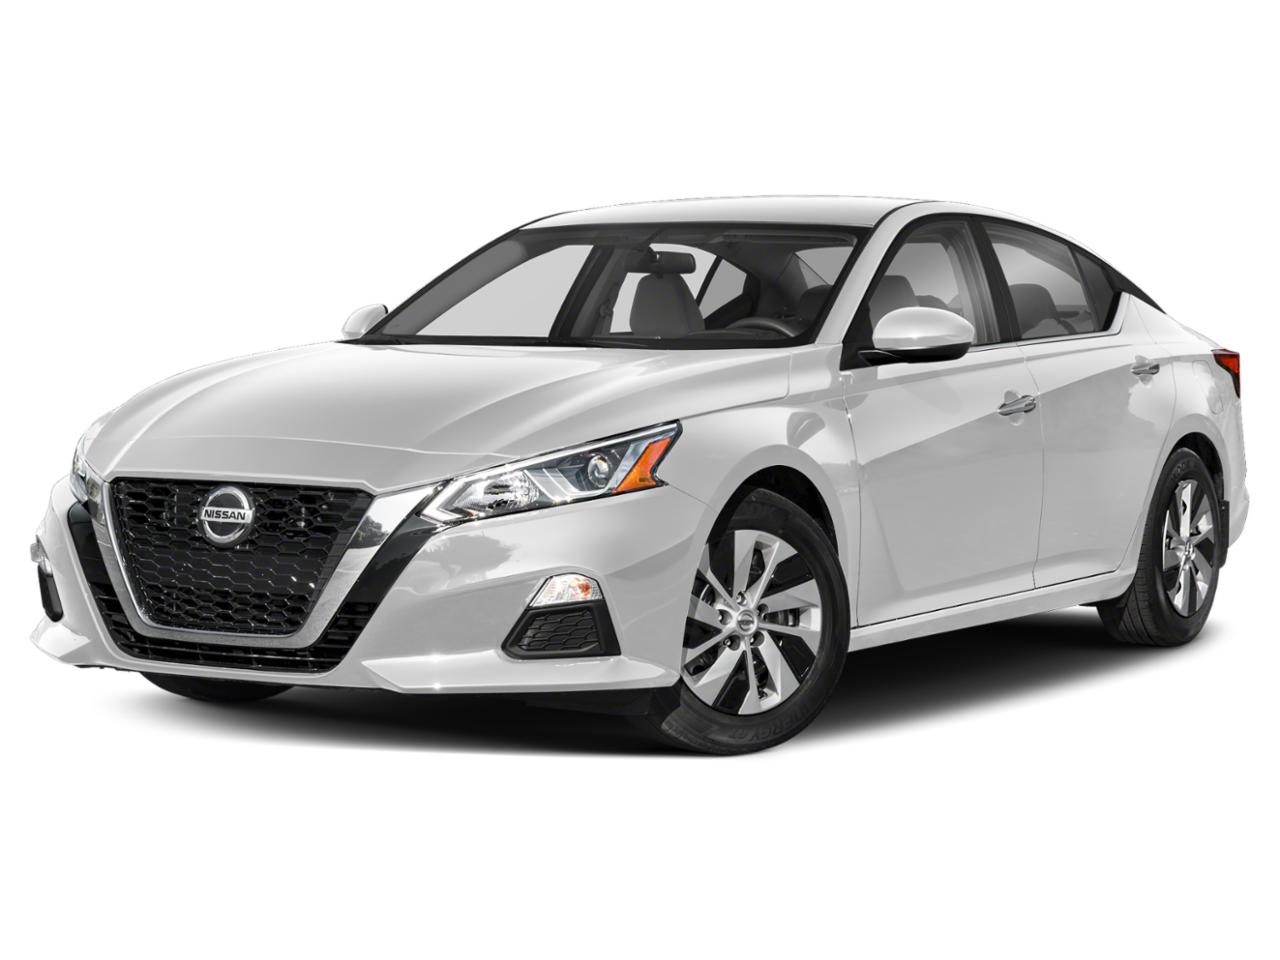 2019 Nissan Altima Vehicle Photo in Portland, OR 97225